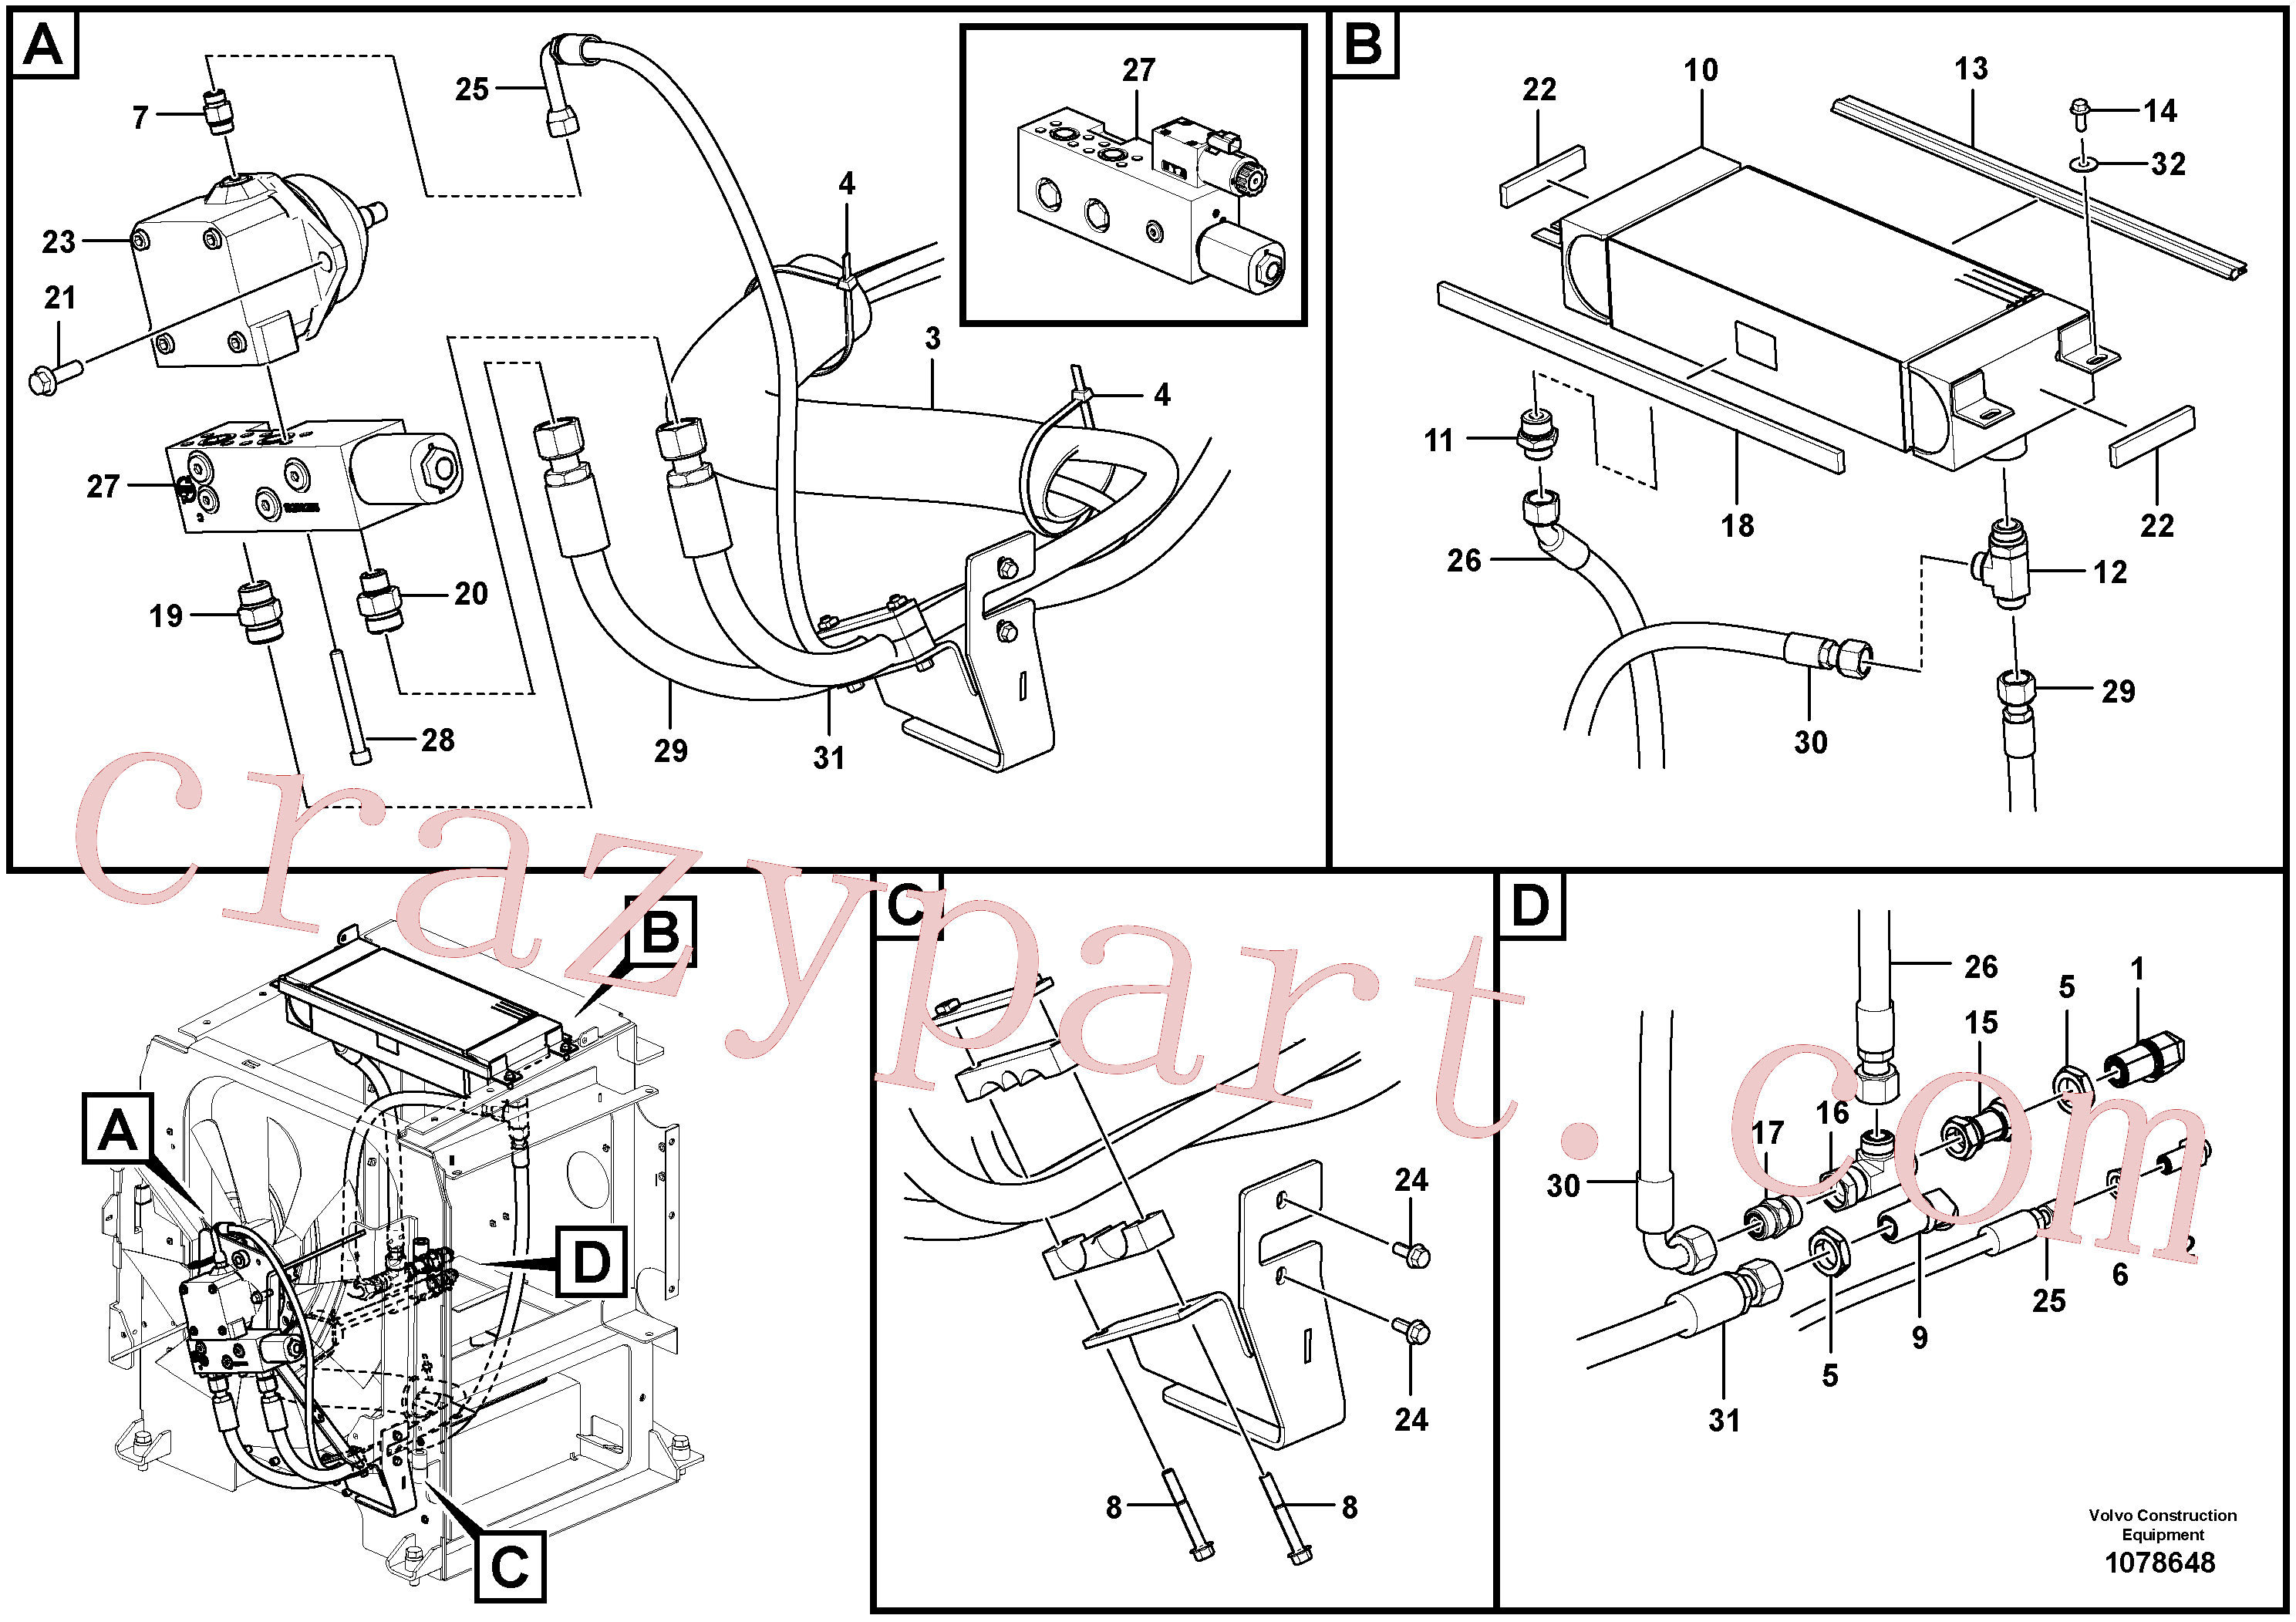 VOE935097 for Volvo Fan circuit - rear(1078648 assembly)